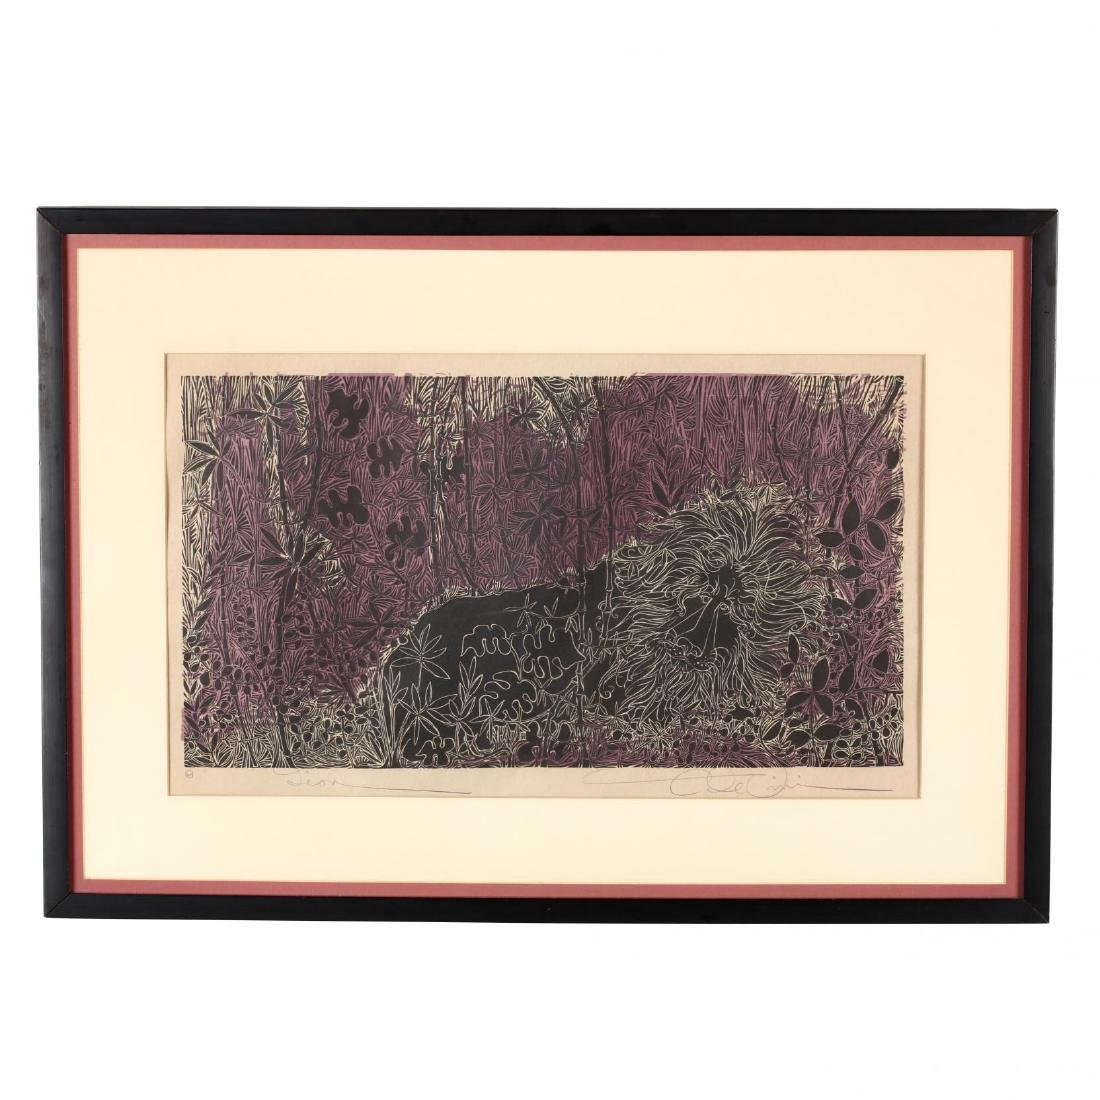 Two 20th Century Woodblock Prints - Elizabeth Wolf and - 2